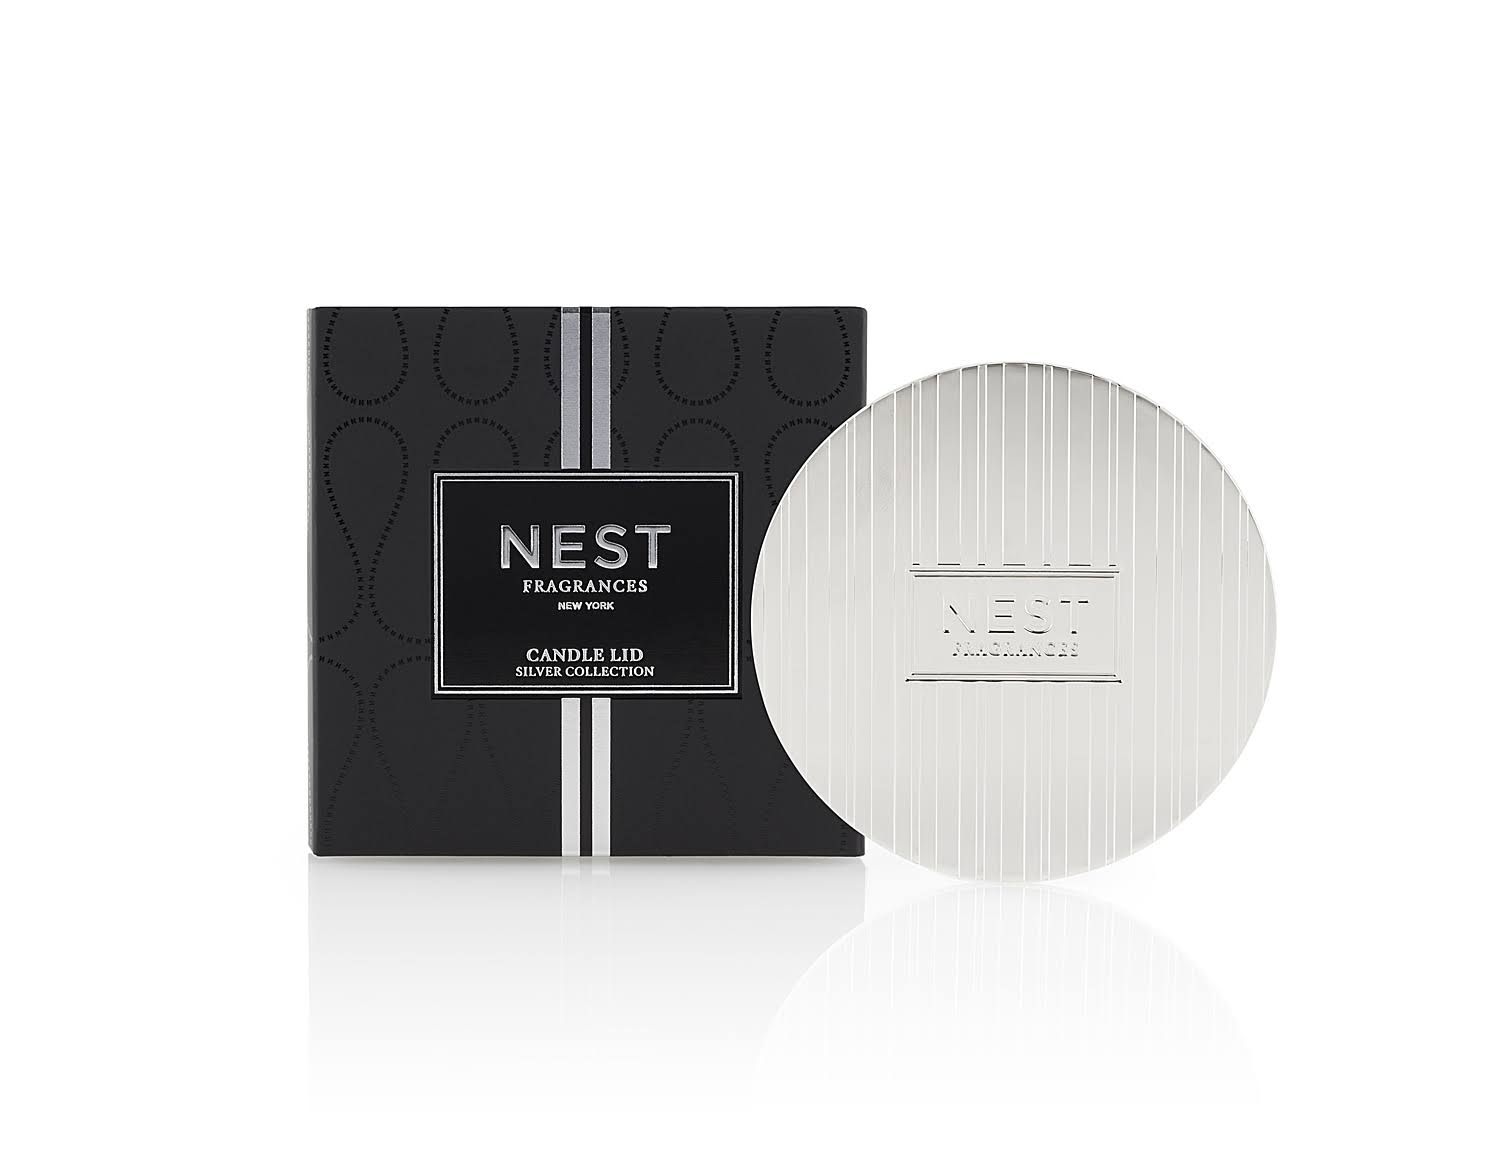 Nest Fragrances Silver Classic Candle Lid